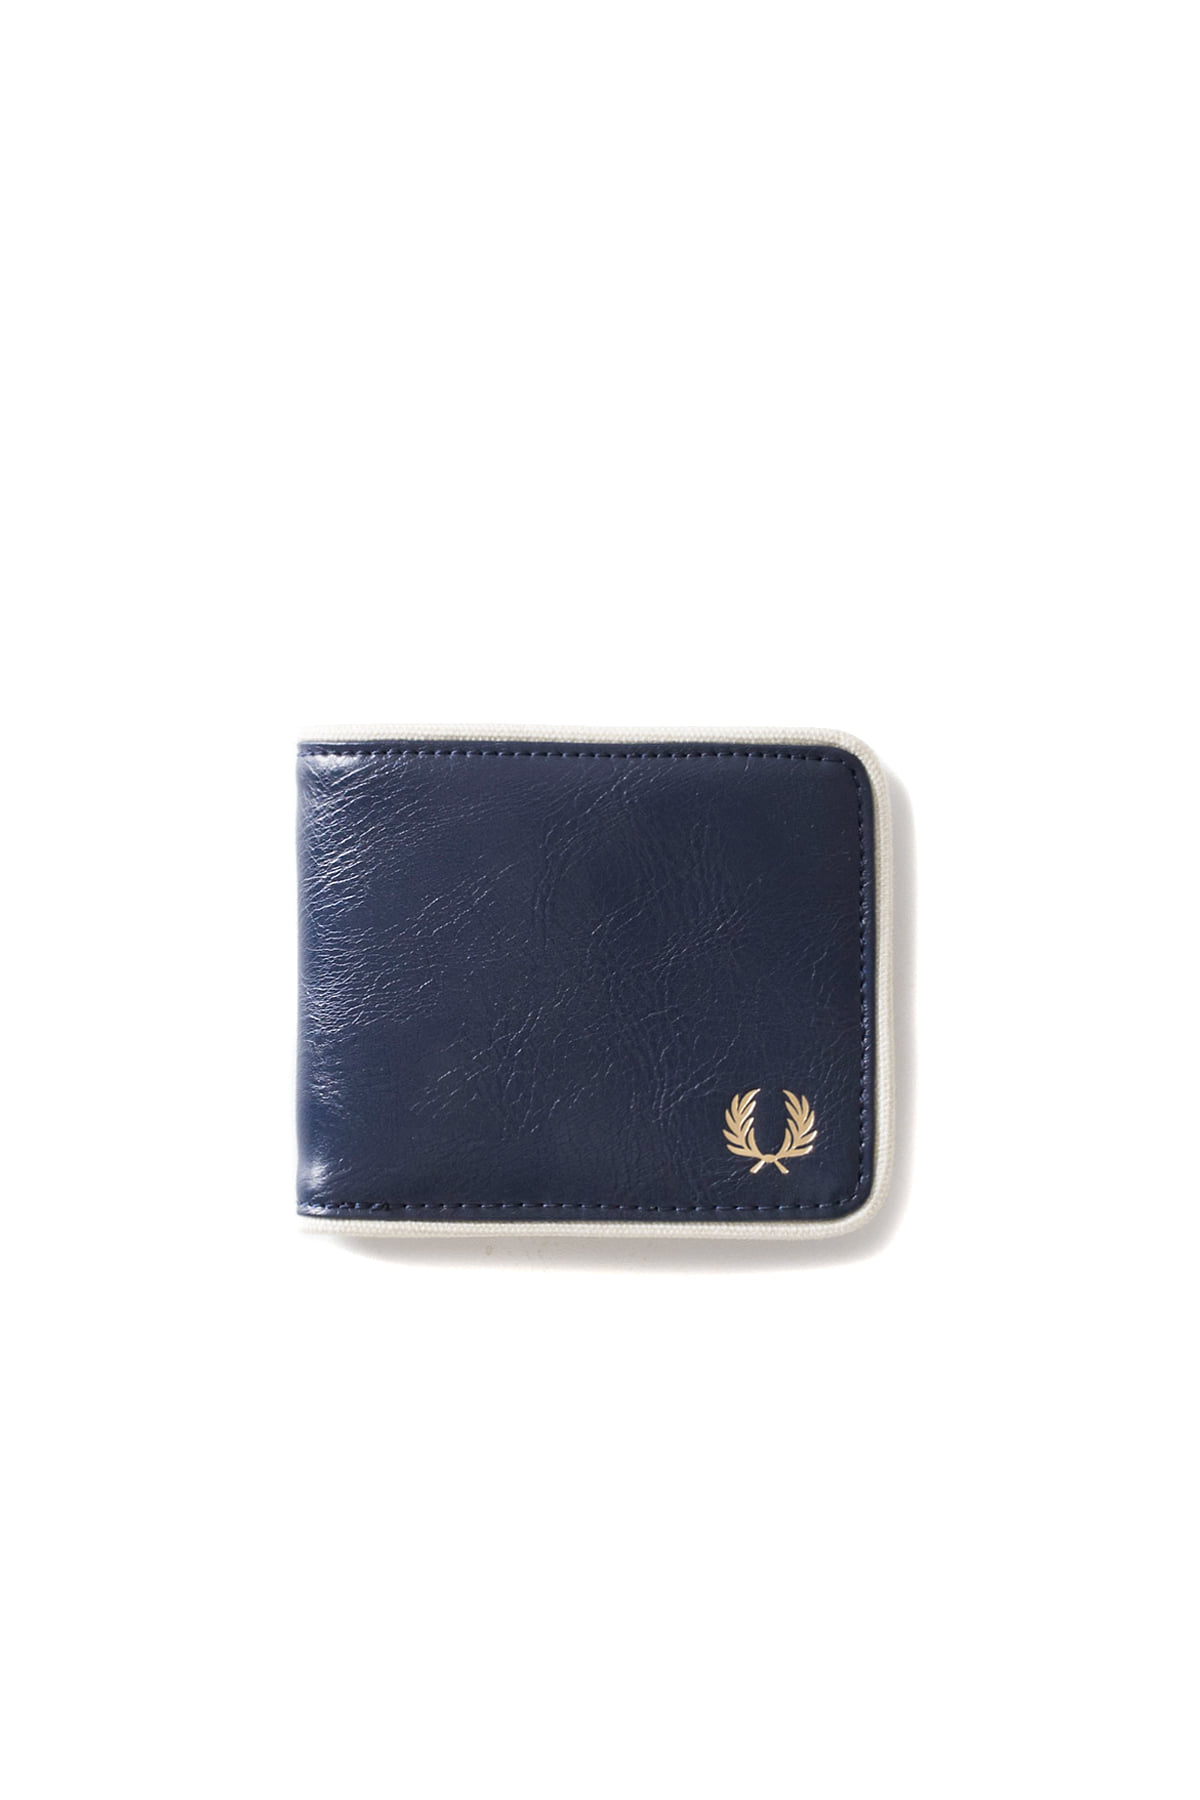 FRED PERRY : Classic Billfold Wallet (Navy / Ecru)